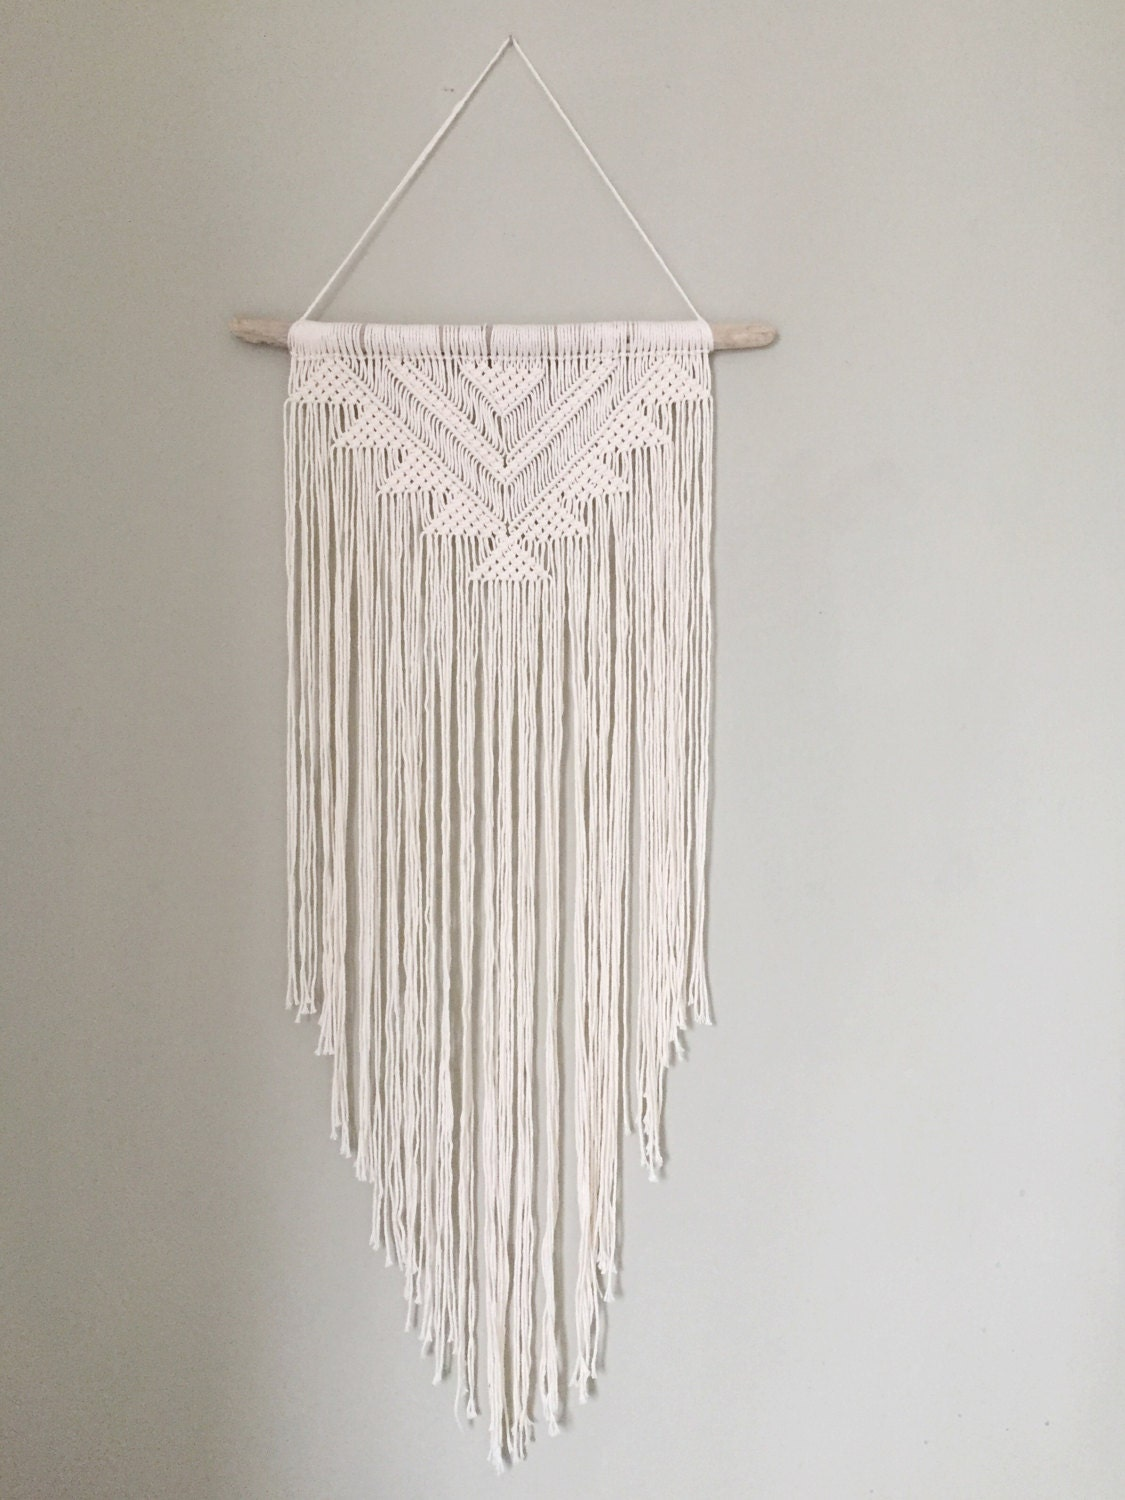 Handmade macrame wall hanging wall decor boho chic wall art for Wall hanging images